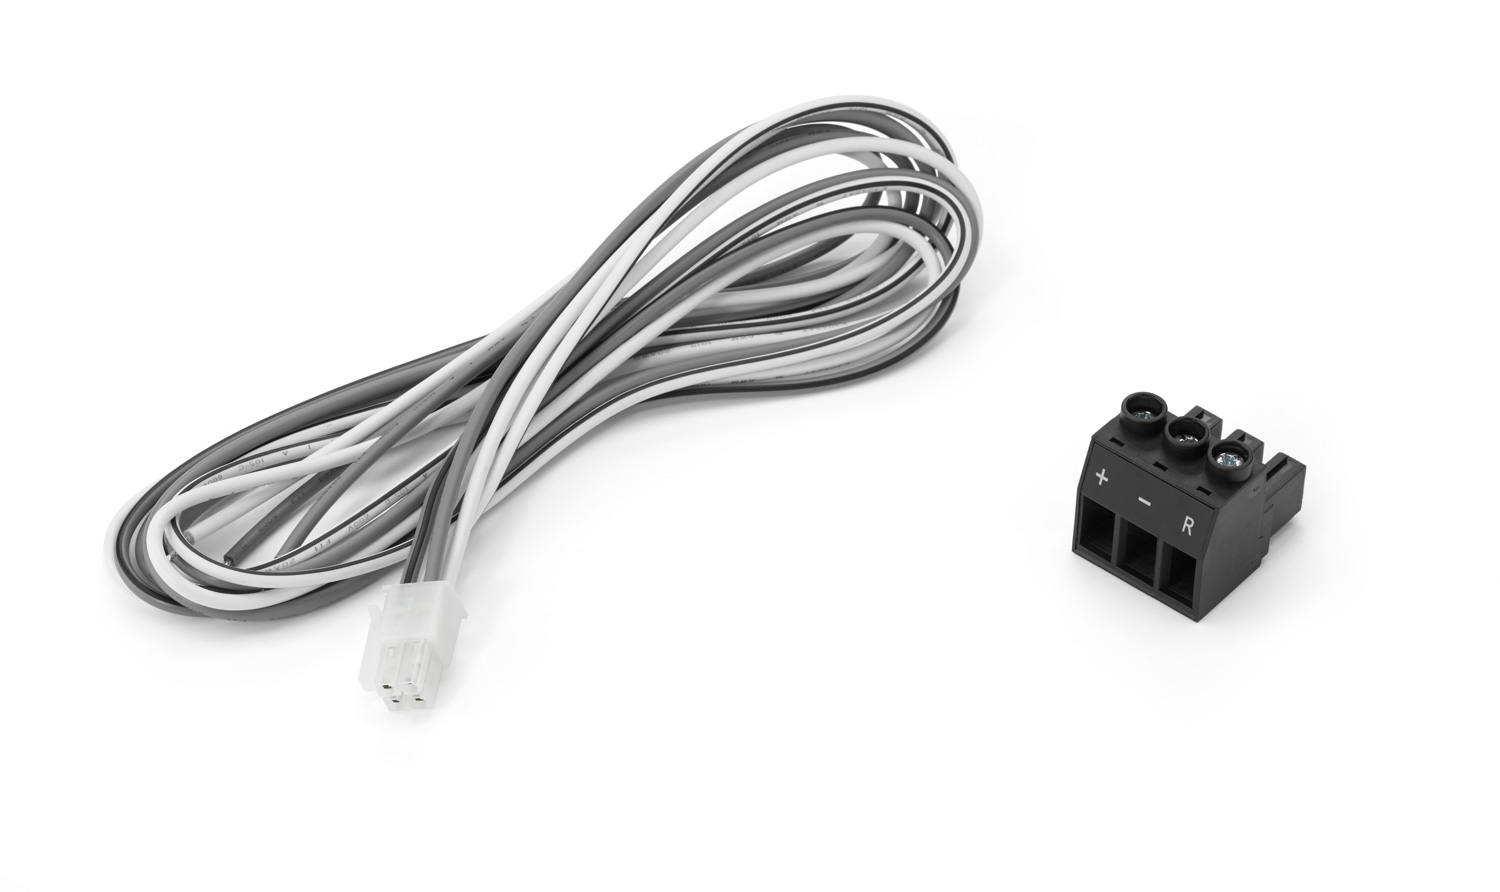 medium resolution of acp acs pp ca rp replacement speaker input wire harness and power plug for microsub and powerwedge